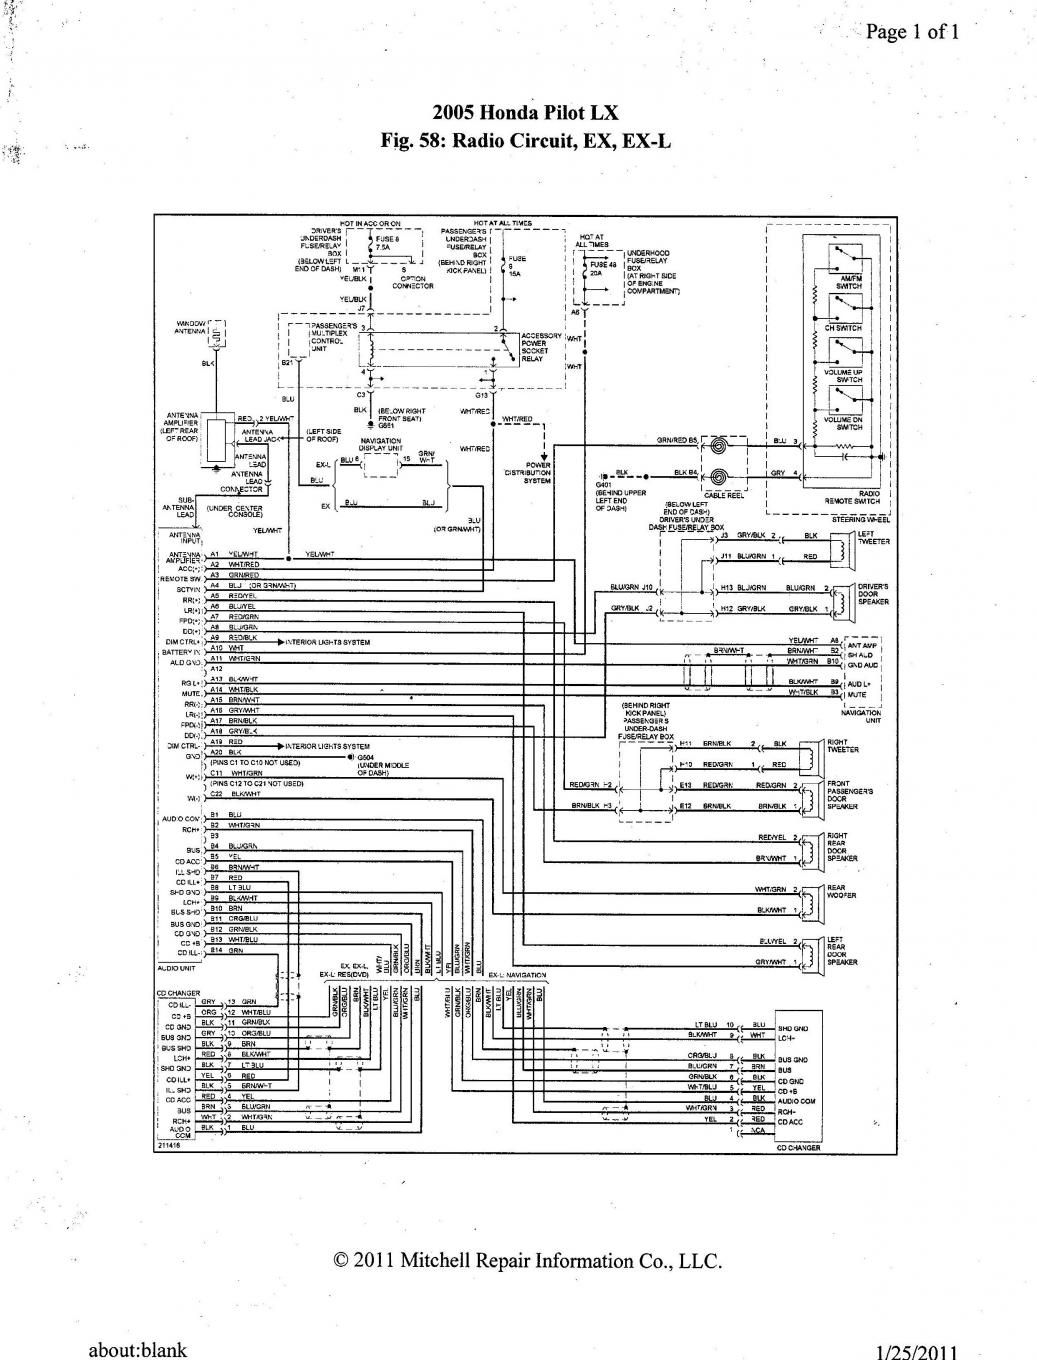 31d20cd85af26839e5c7abc2010f3259 2005 honda pilot ex l, ex radio wiring diagram 2005 honda pilot 2004 Honda Pilot Engine Diagram at cos-gaming.co